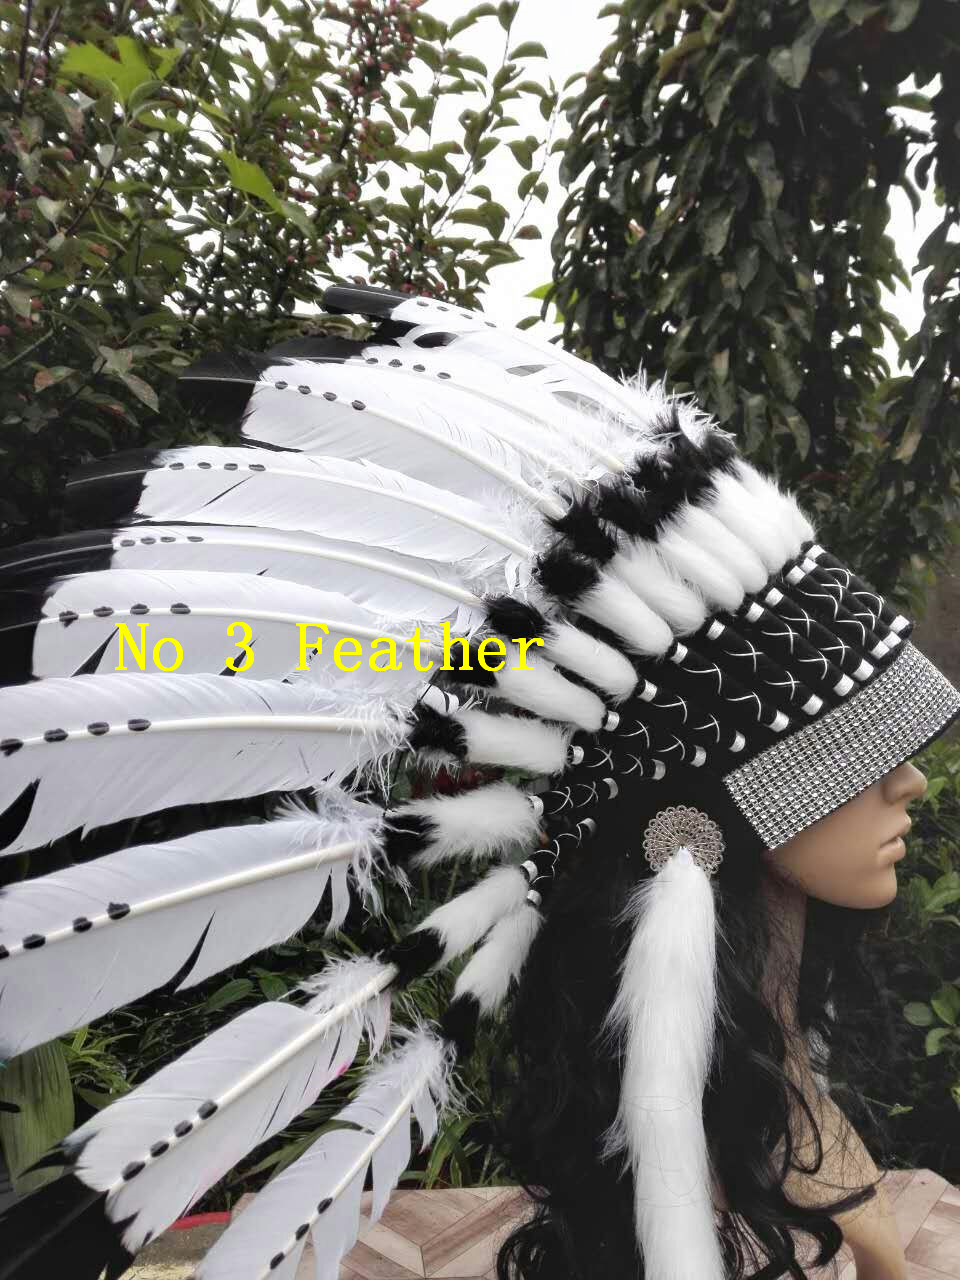 21 pouces haute plume coiffure casque plume chapeau halloween plume costume-in Plume from Maison & Animalerie    1